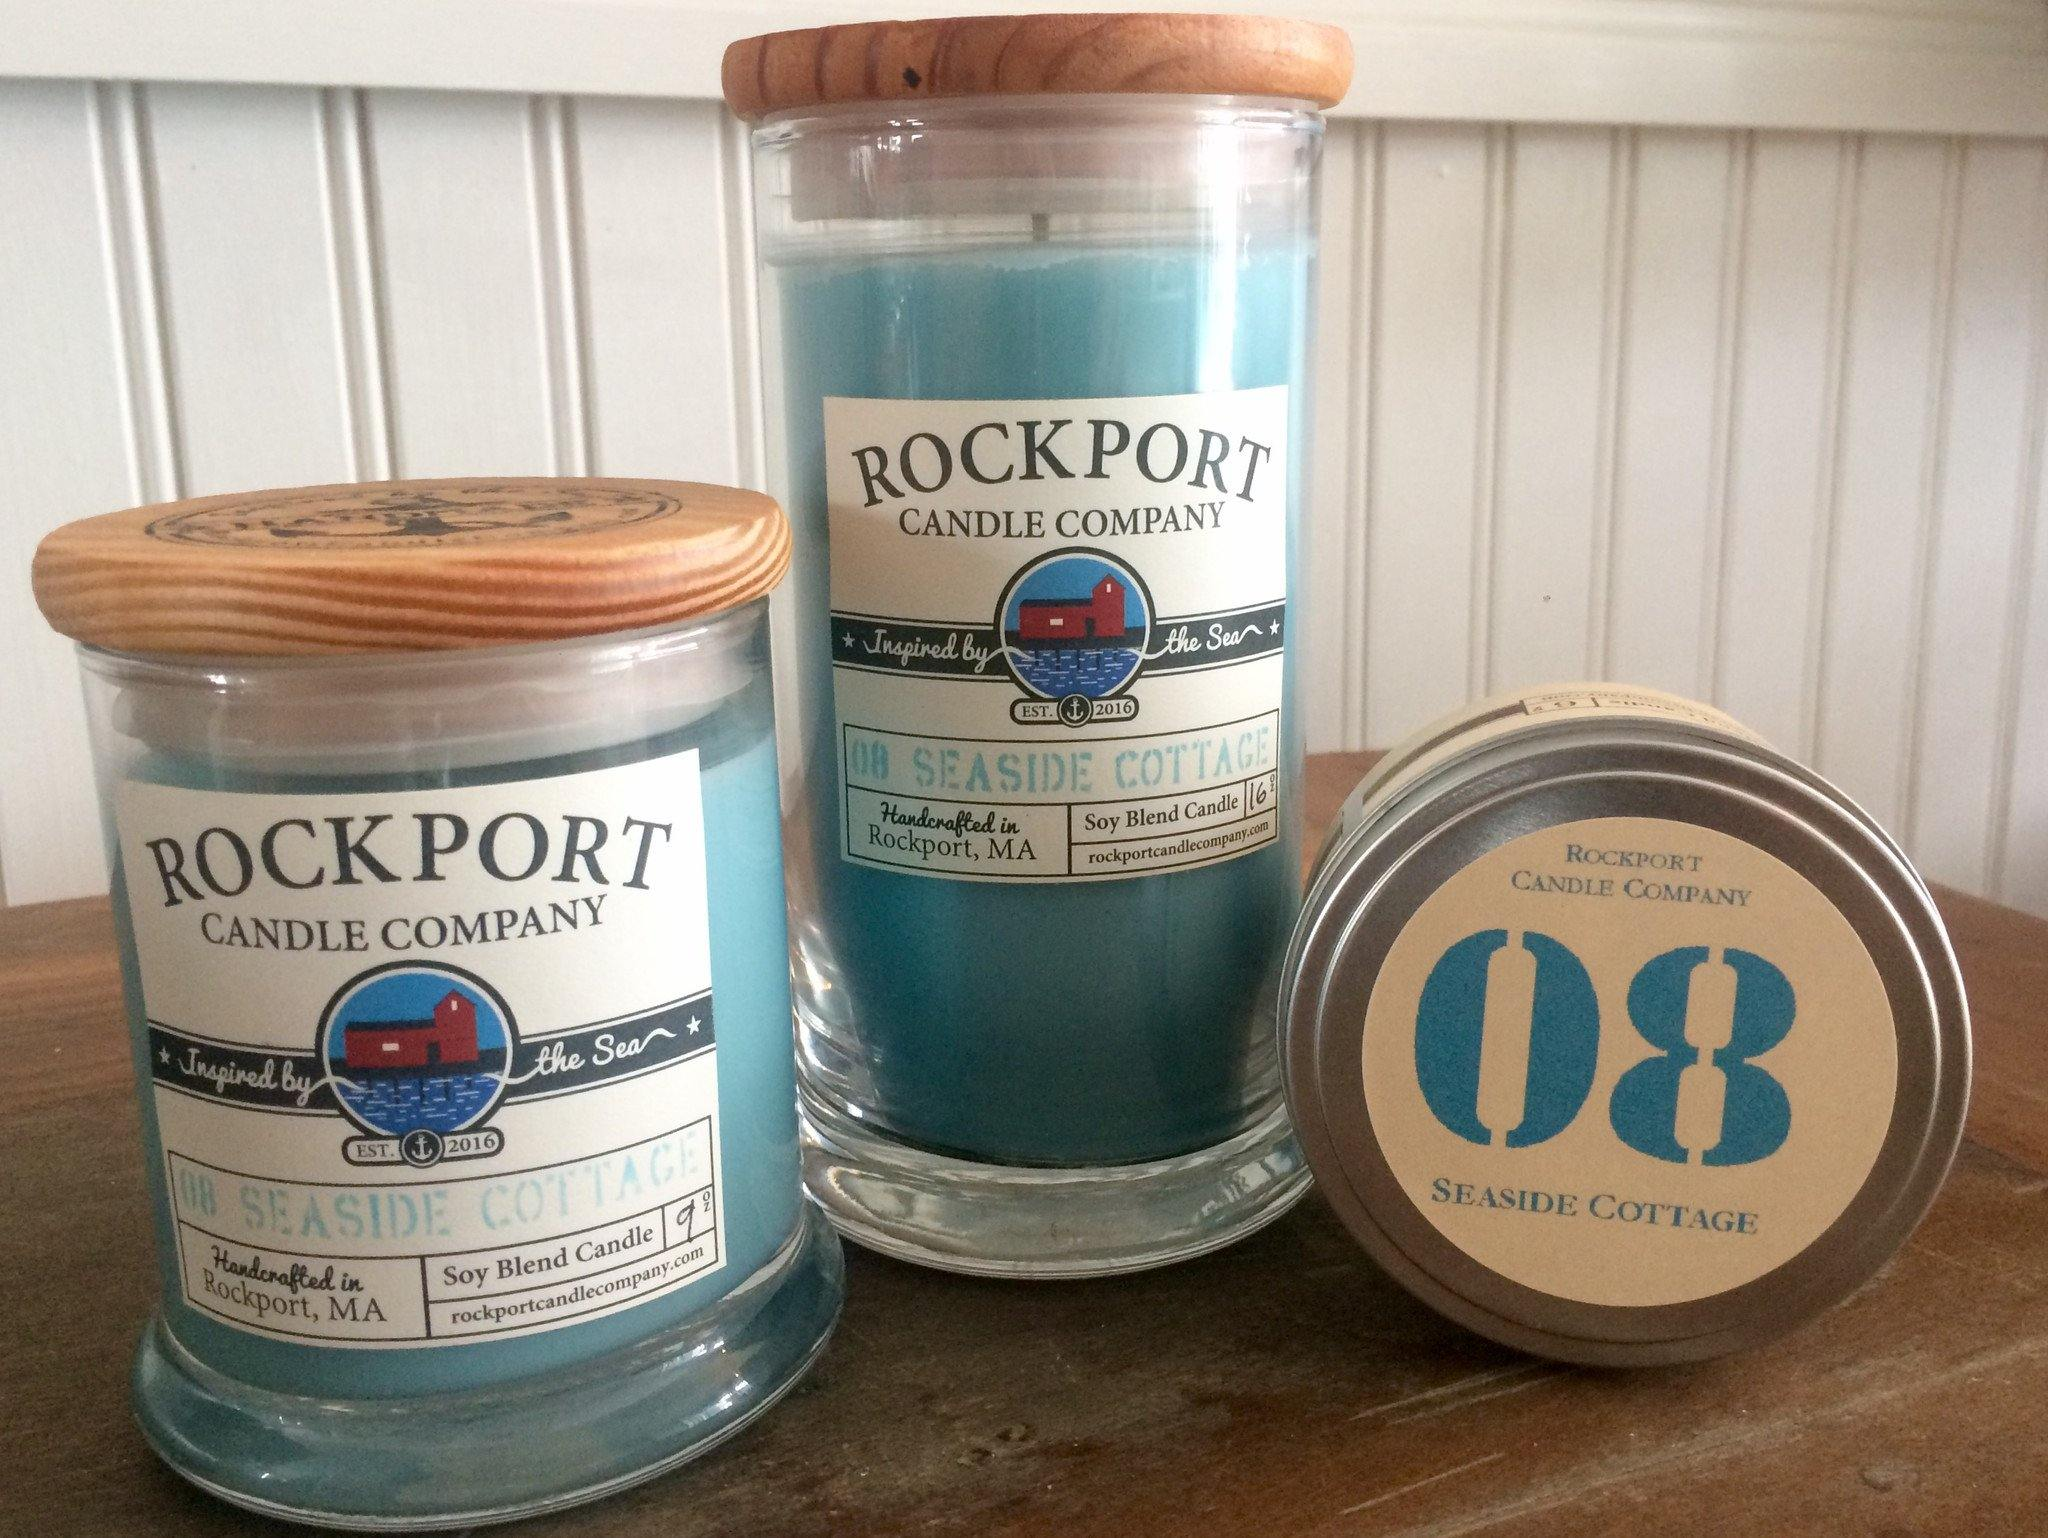 Seaside Cottage Rockport Candle Company 08